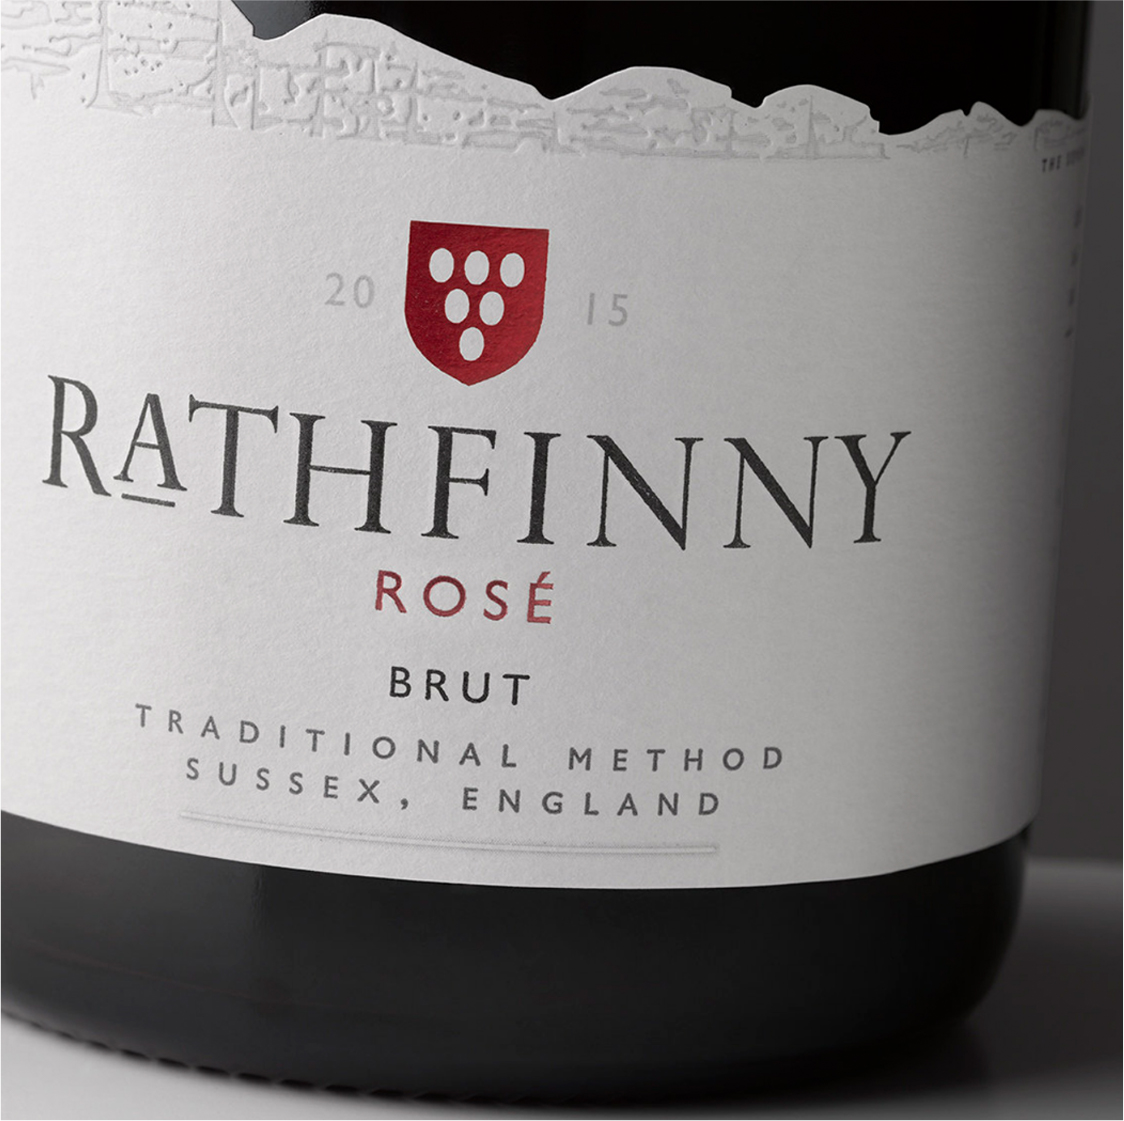 Rathfinny label